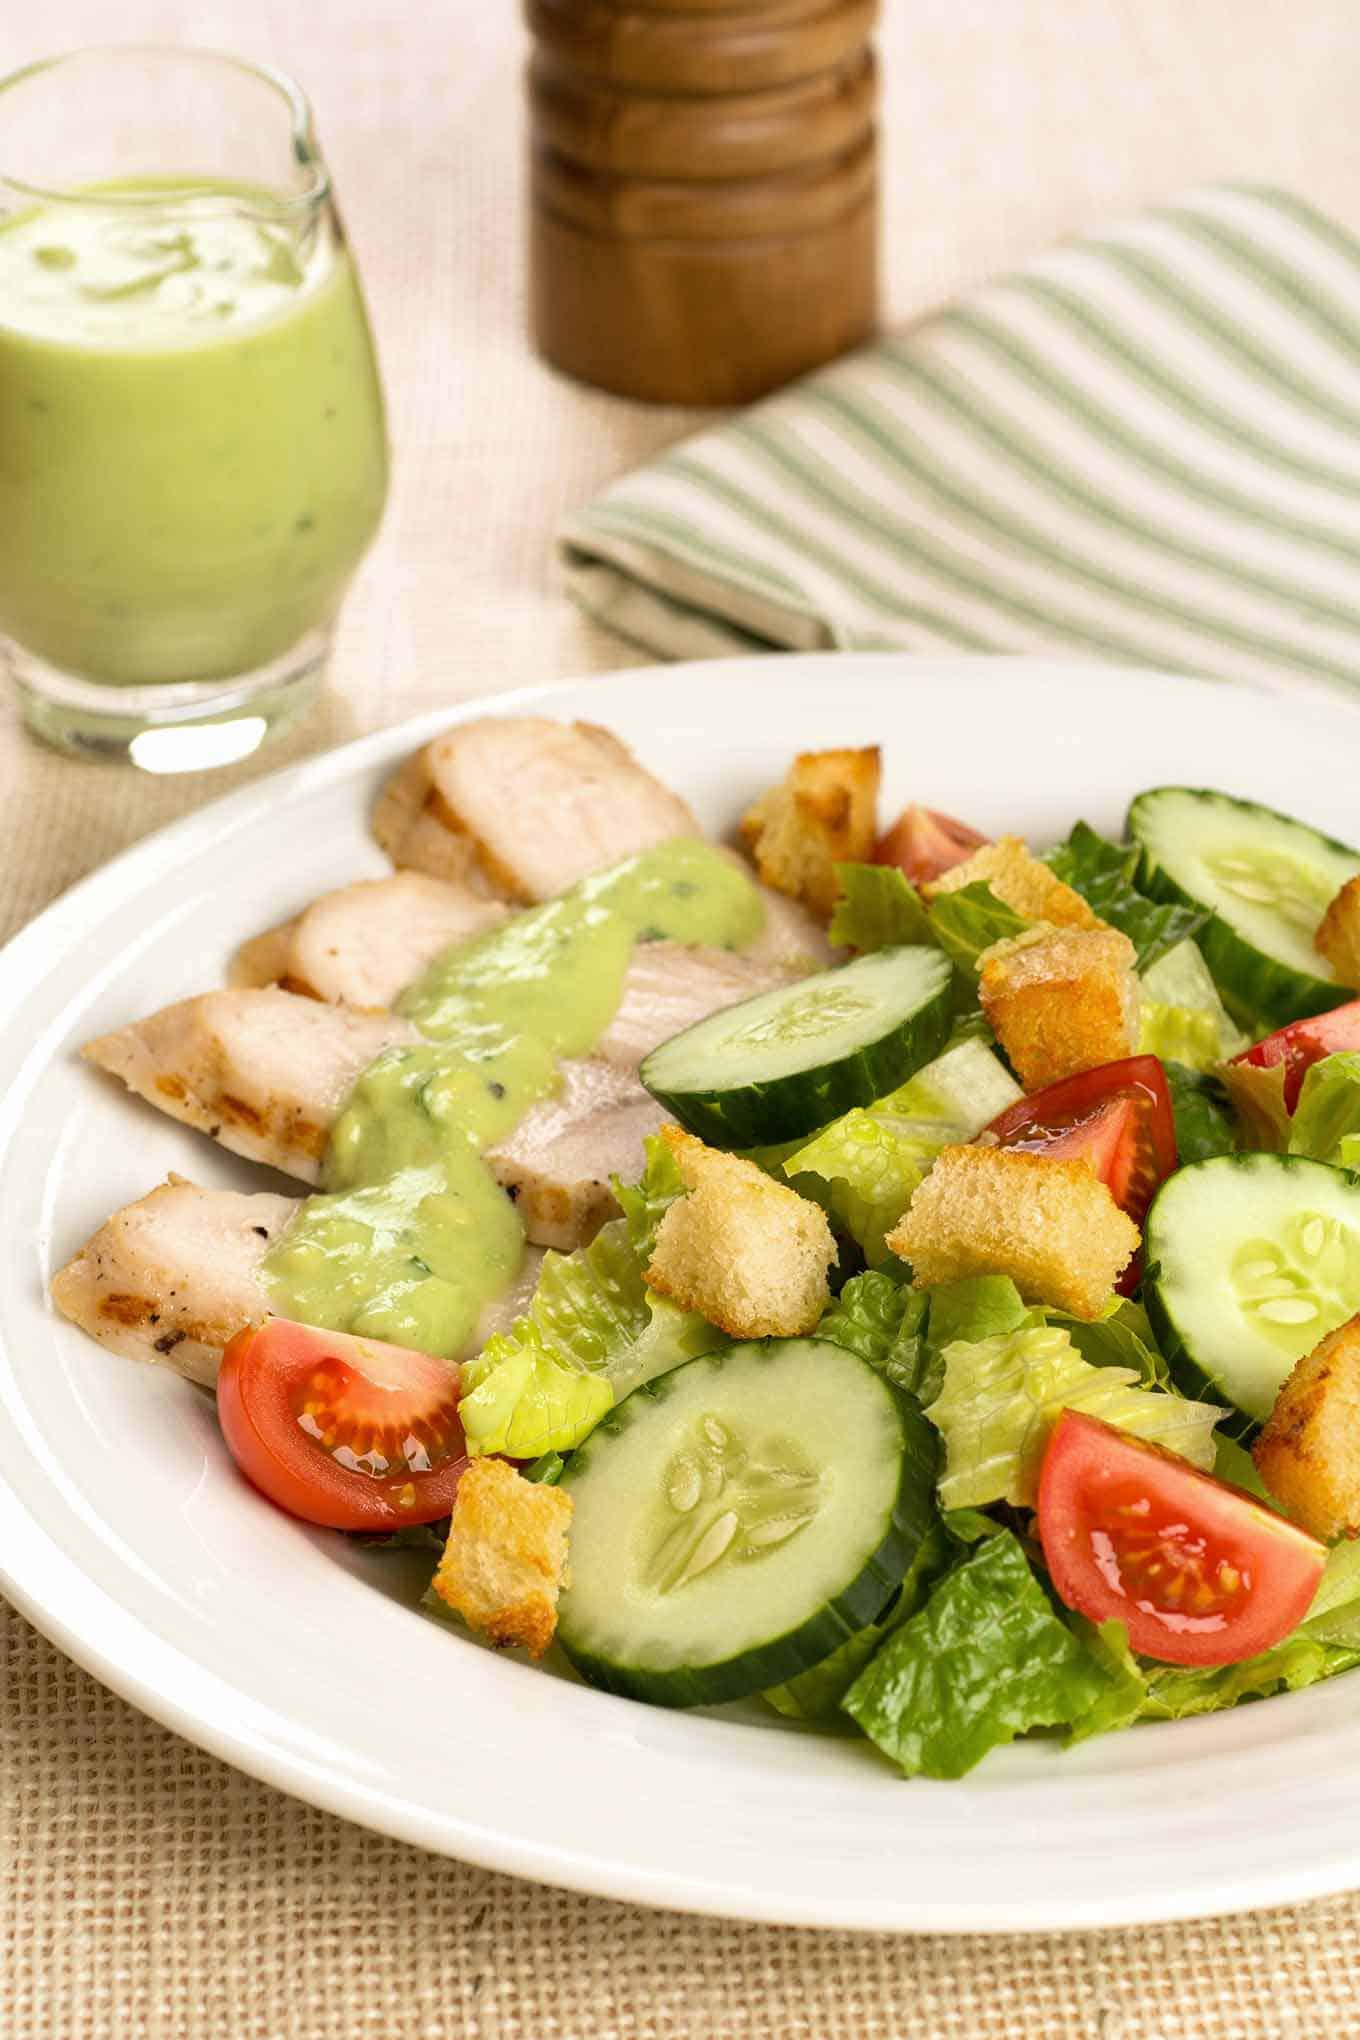 Serving of salad with grilled, brined turkey slices and a topping of avocado dressing.